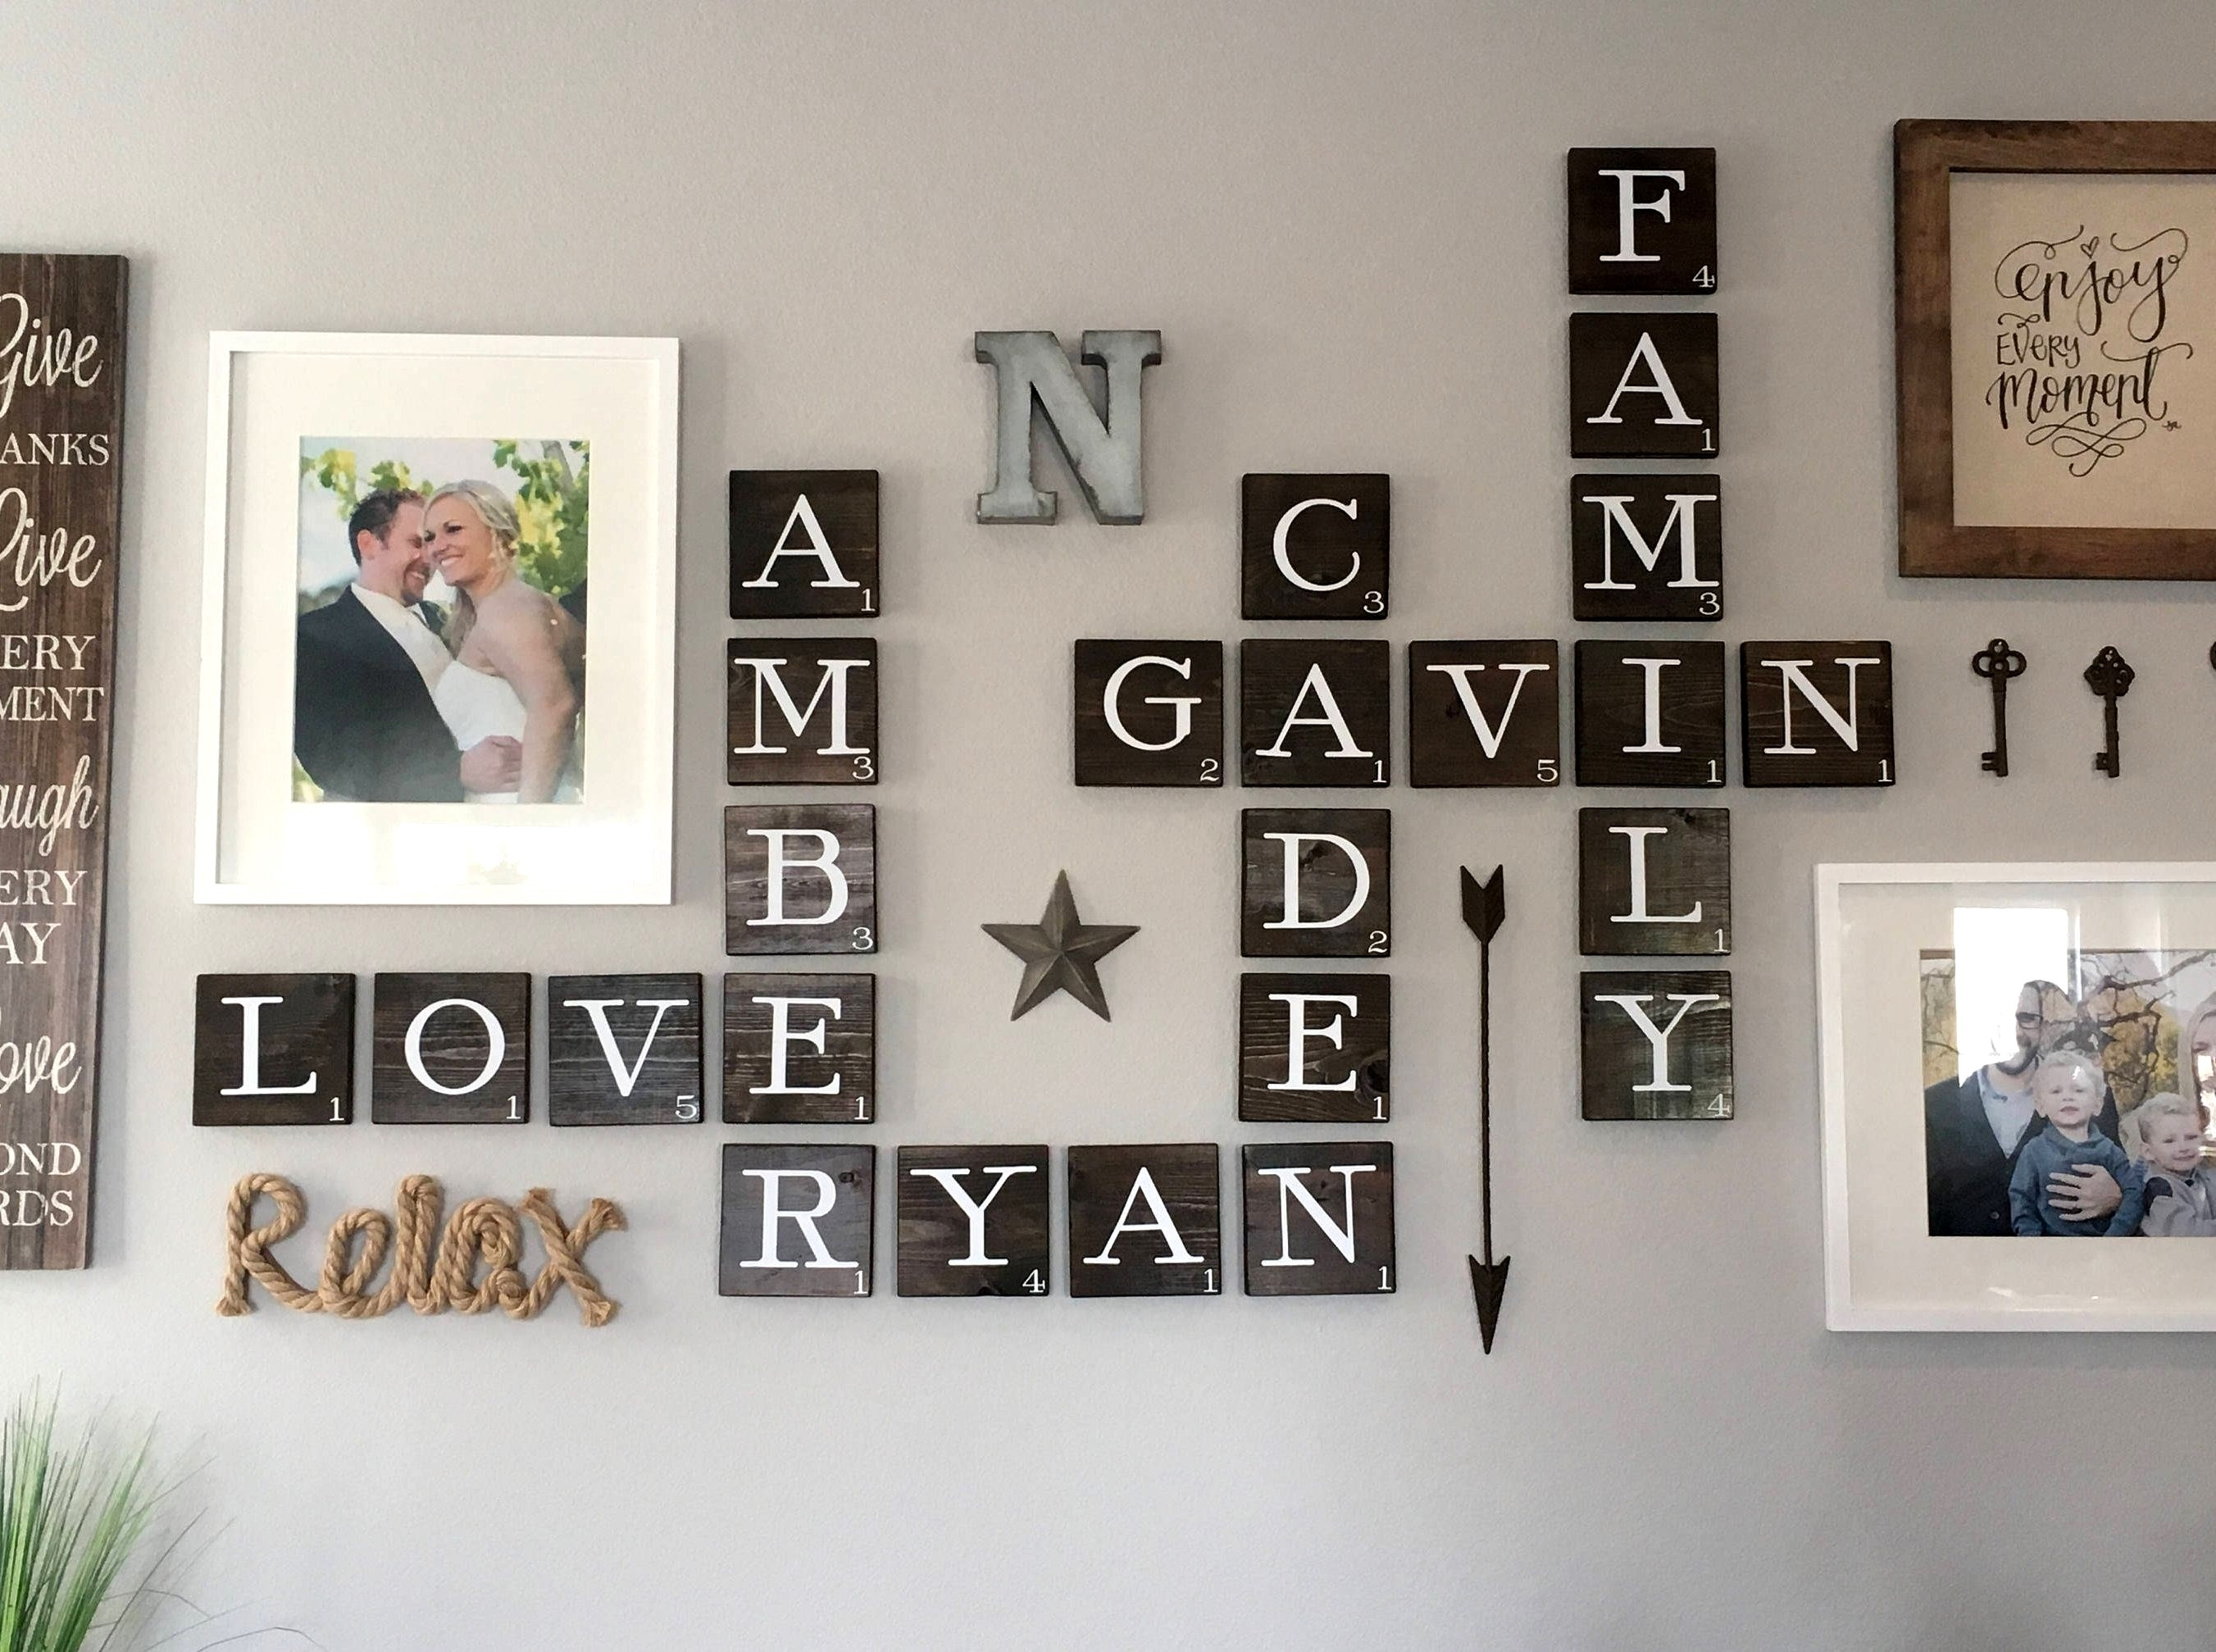 Wall Scrabble Tiles Wall Scrabble Scrabble Wall Tiles Scrabble Wall Pertaining To 2018 Scrabble Wall Art (Gallery 3 of 20)